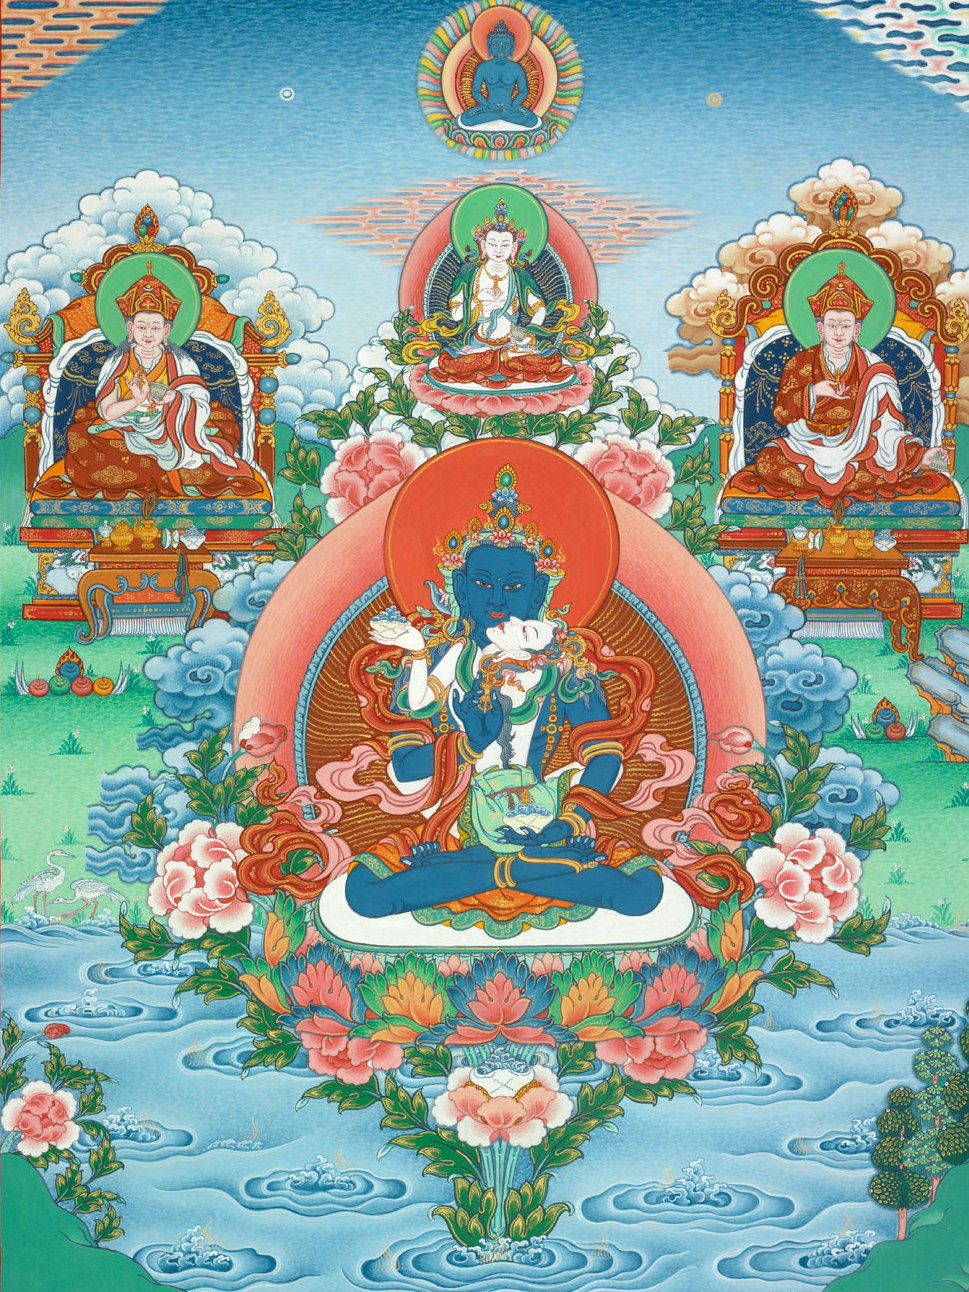 Dakini Heart Essence Refuge, Kumar Lama